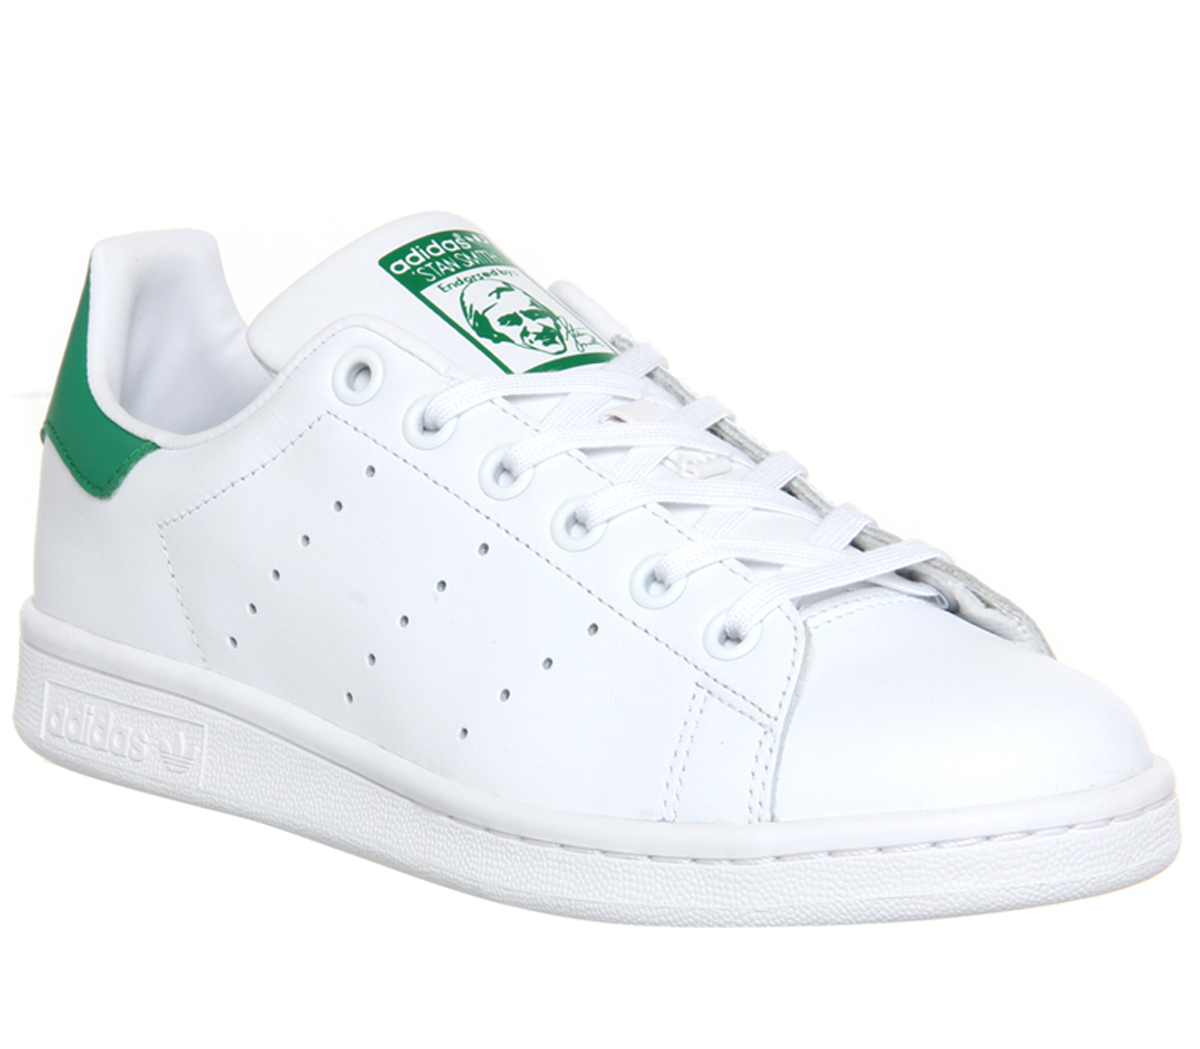 scarpe stan smith verdi